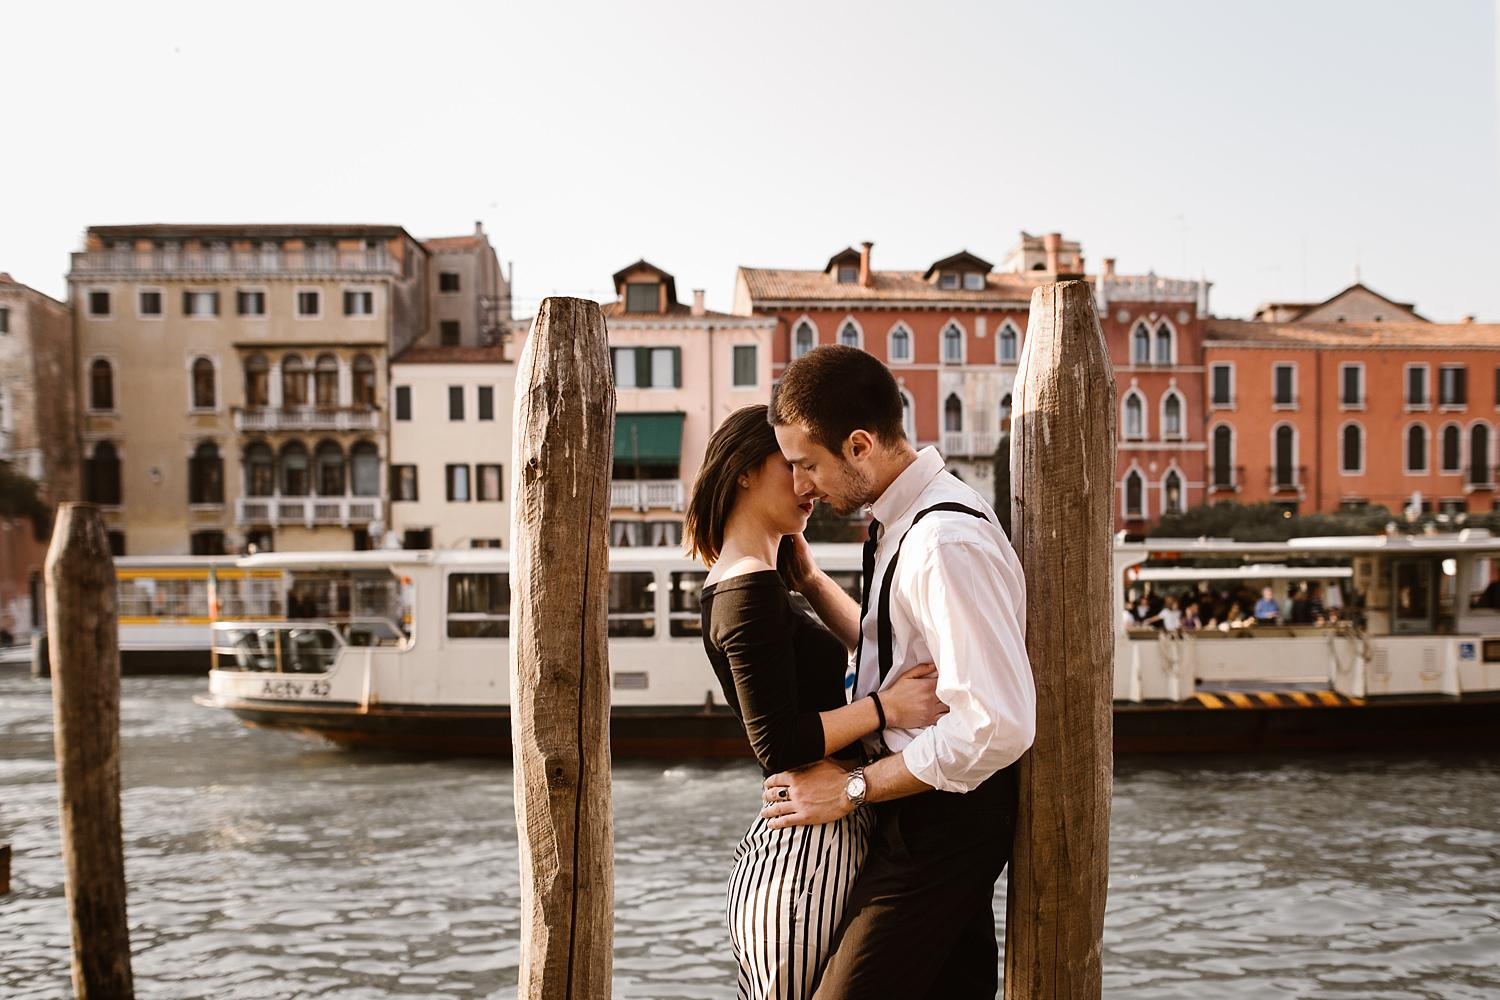 GL 54 - Giulia & Leonardo - An Intimate Shooting in Venice